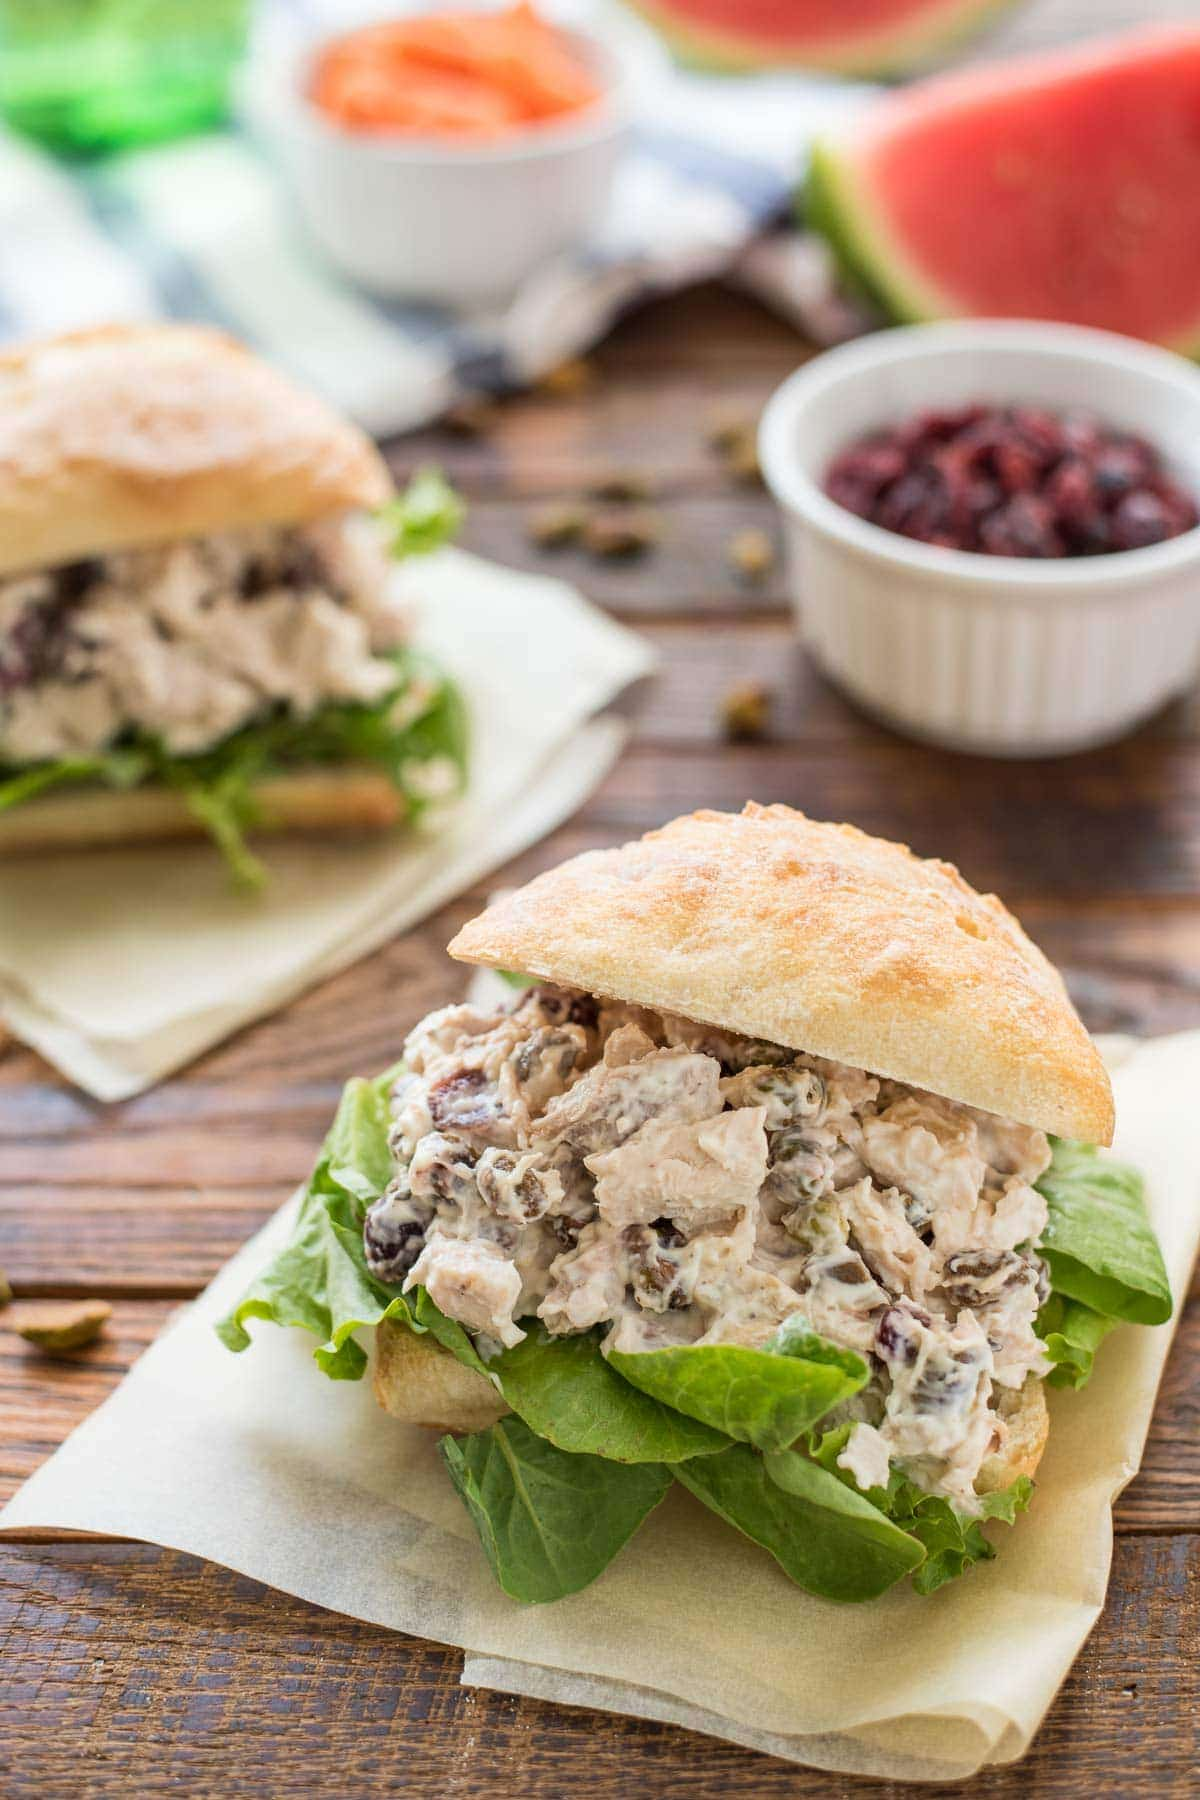 This Cranberry Chicken Salad studded with crunchy pistachios is the perfect spring and summertime lunch.